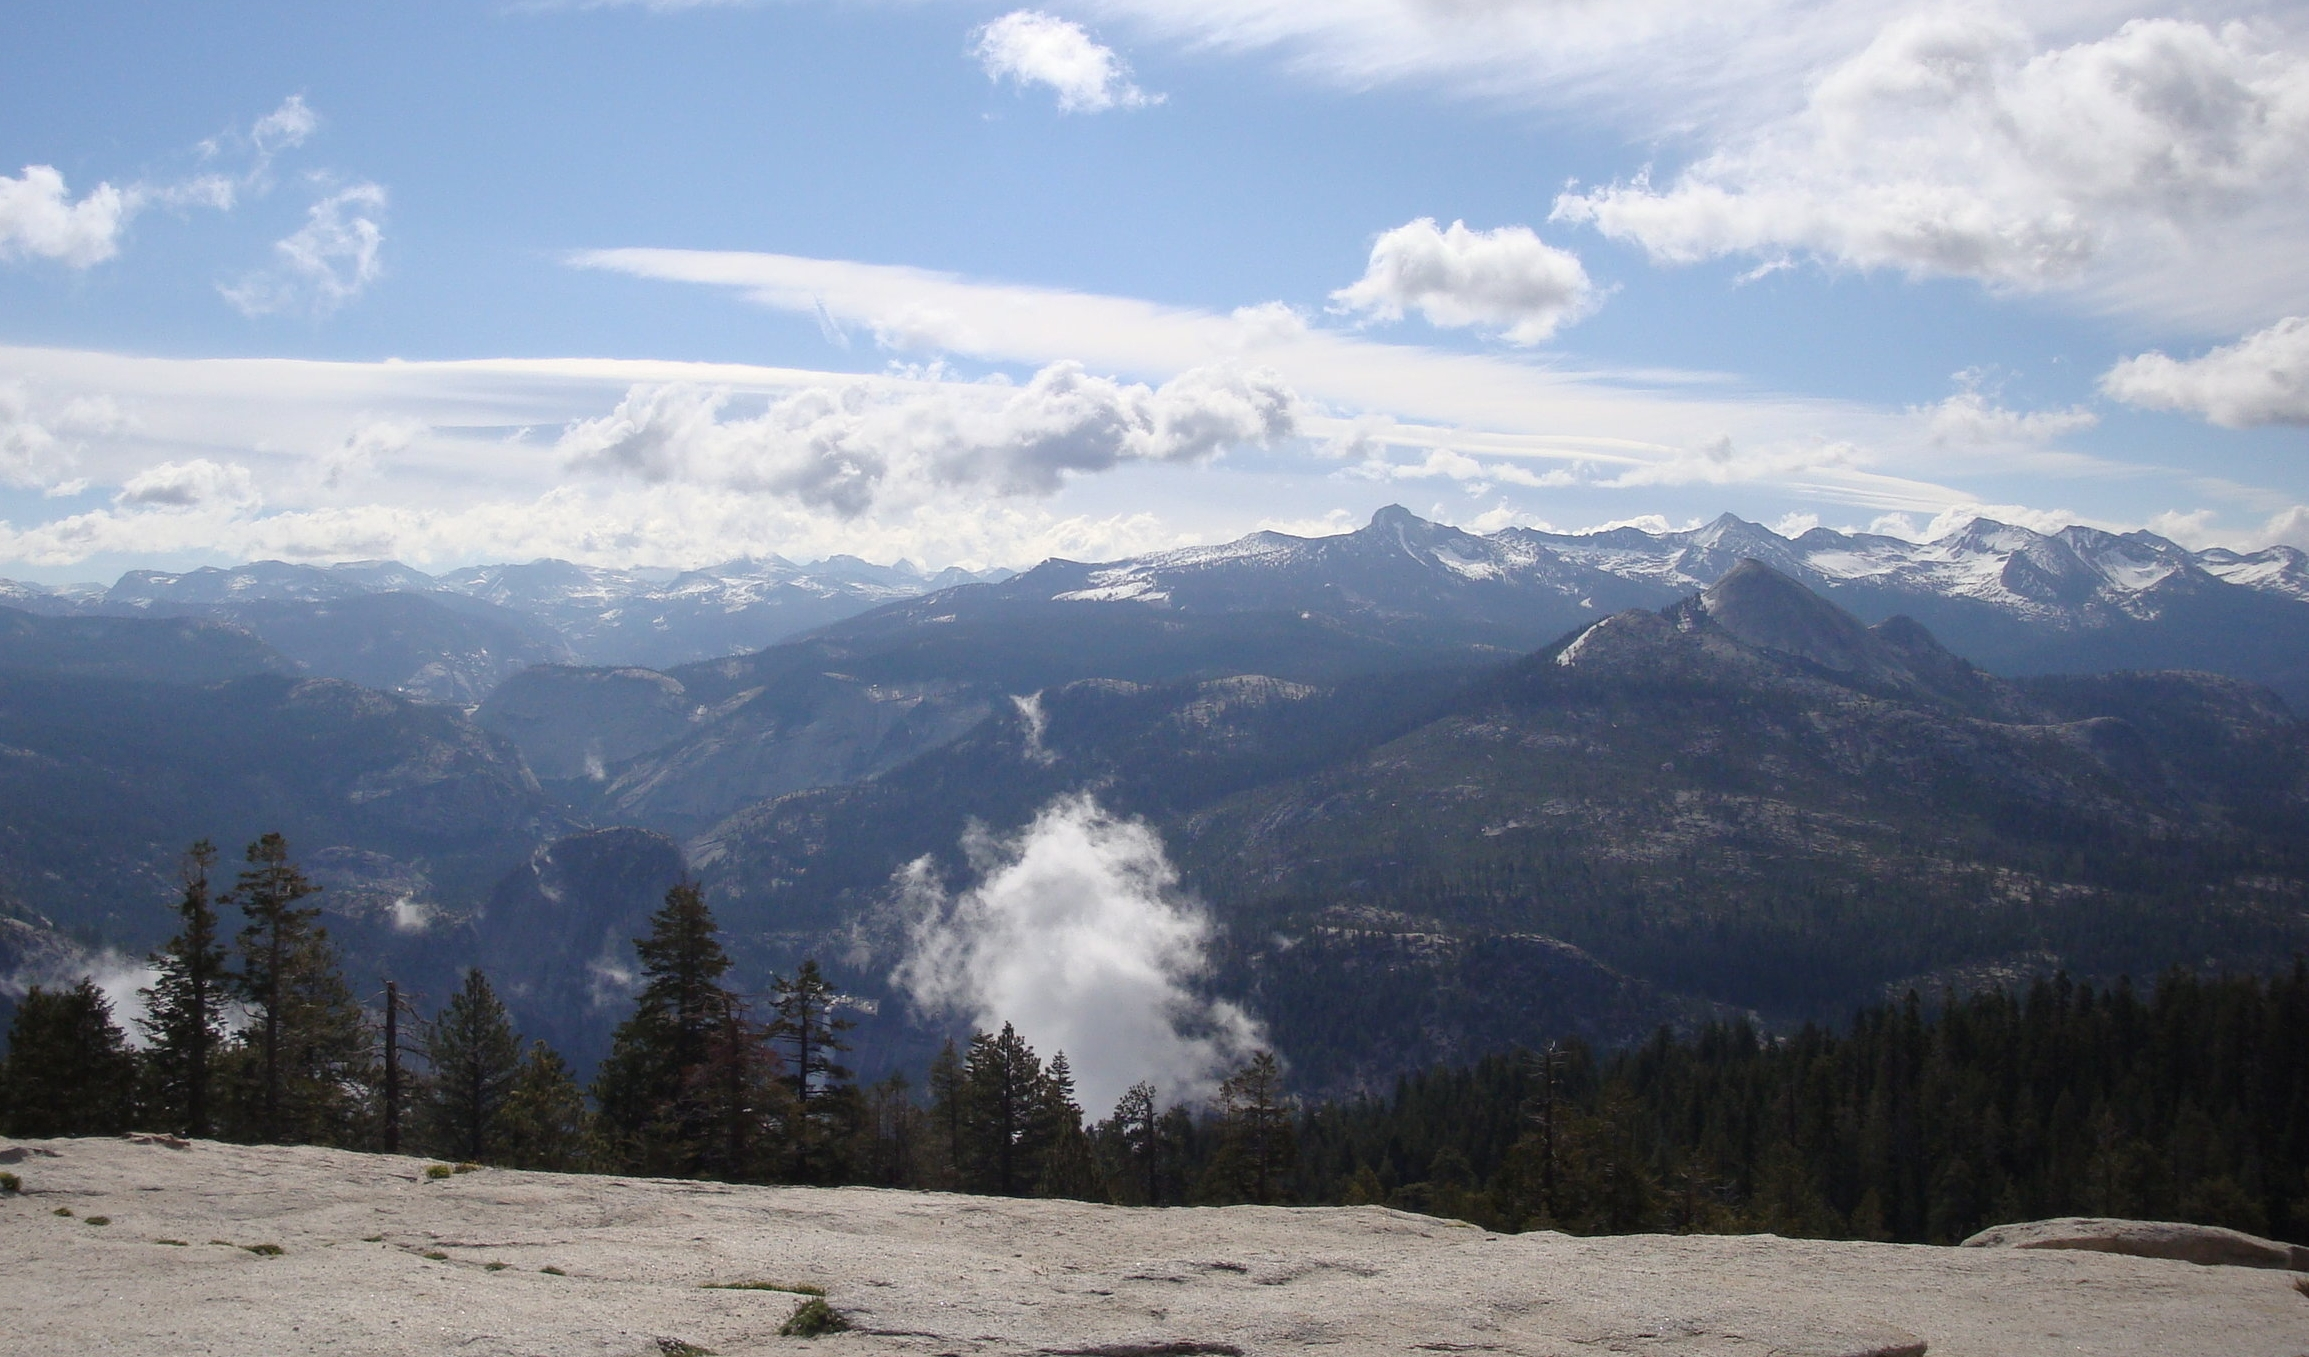 High Sierras - June 2008 - View of the high Sierras from Sentinel Dome.